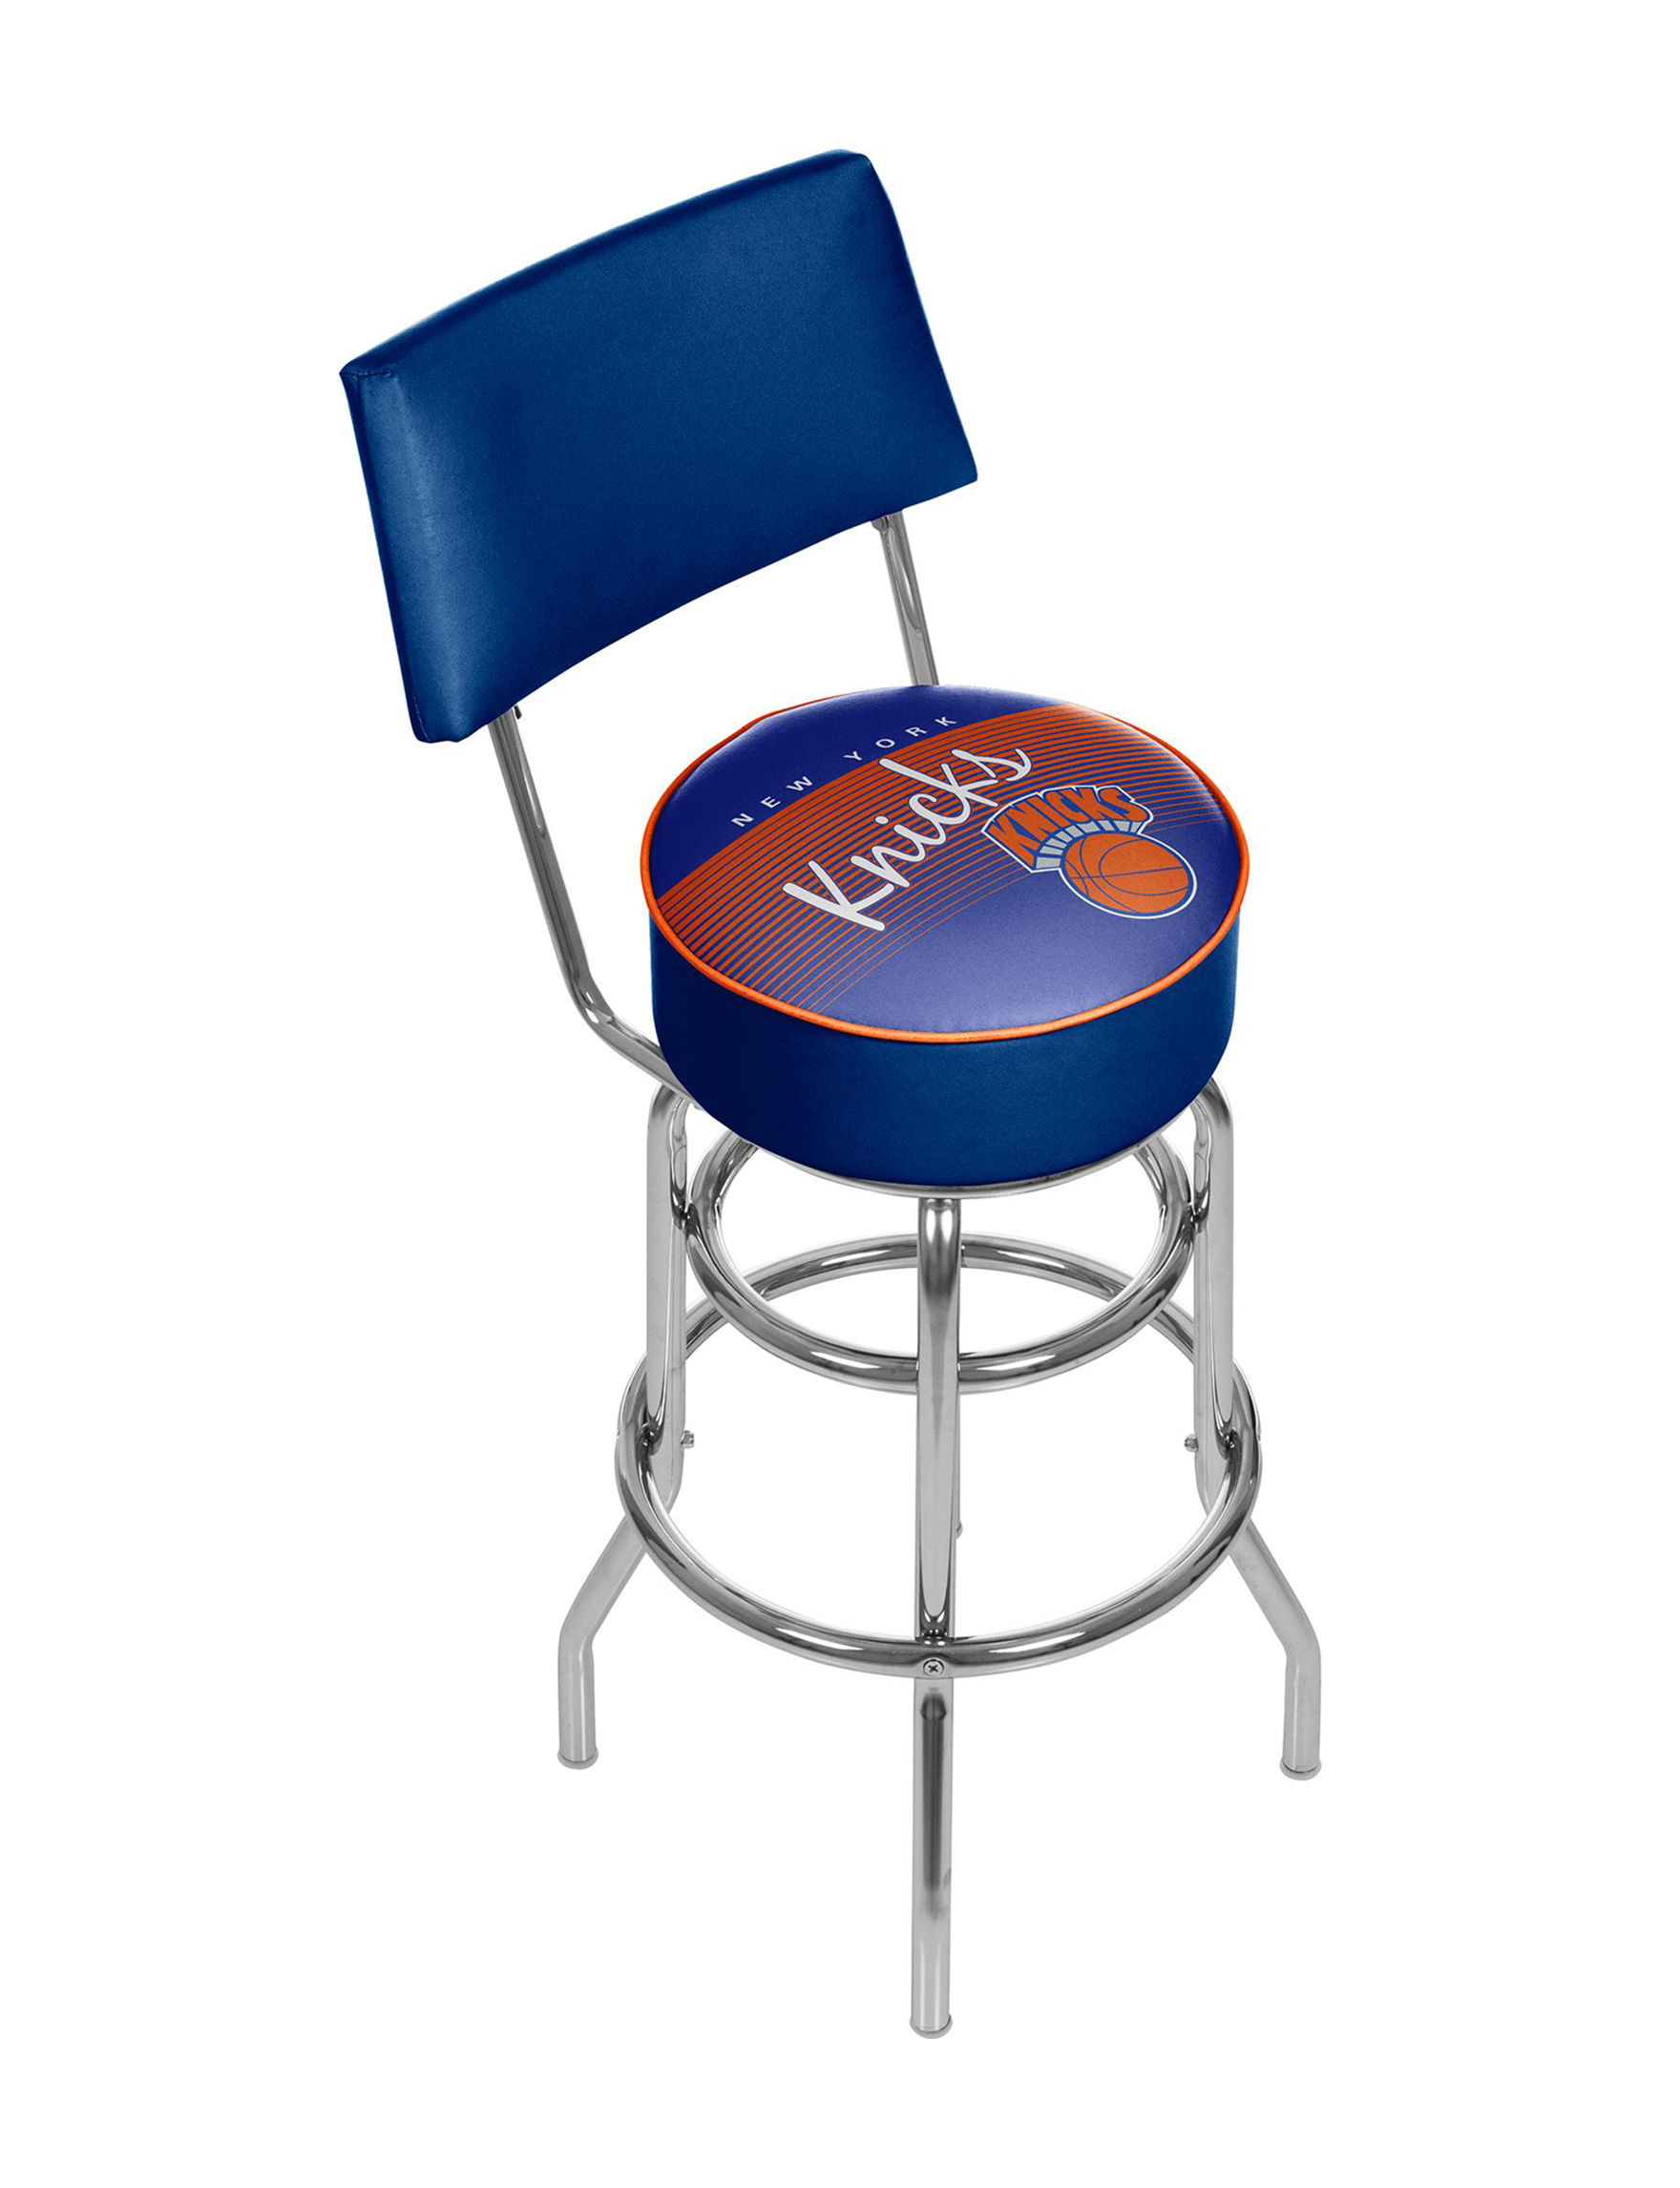 Trademark Global Blue / Orange Bar & Kitchen Stools Kitchen & Dining Furniture